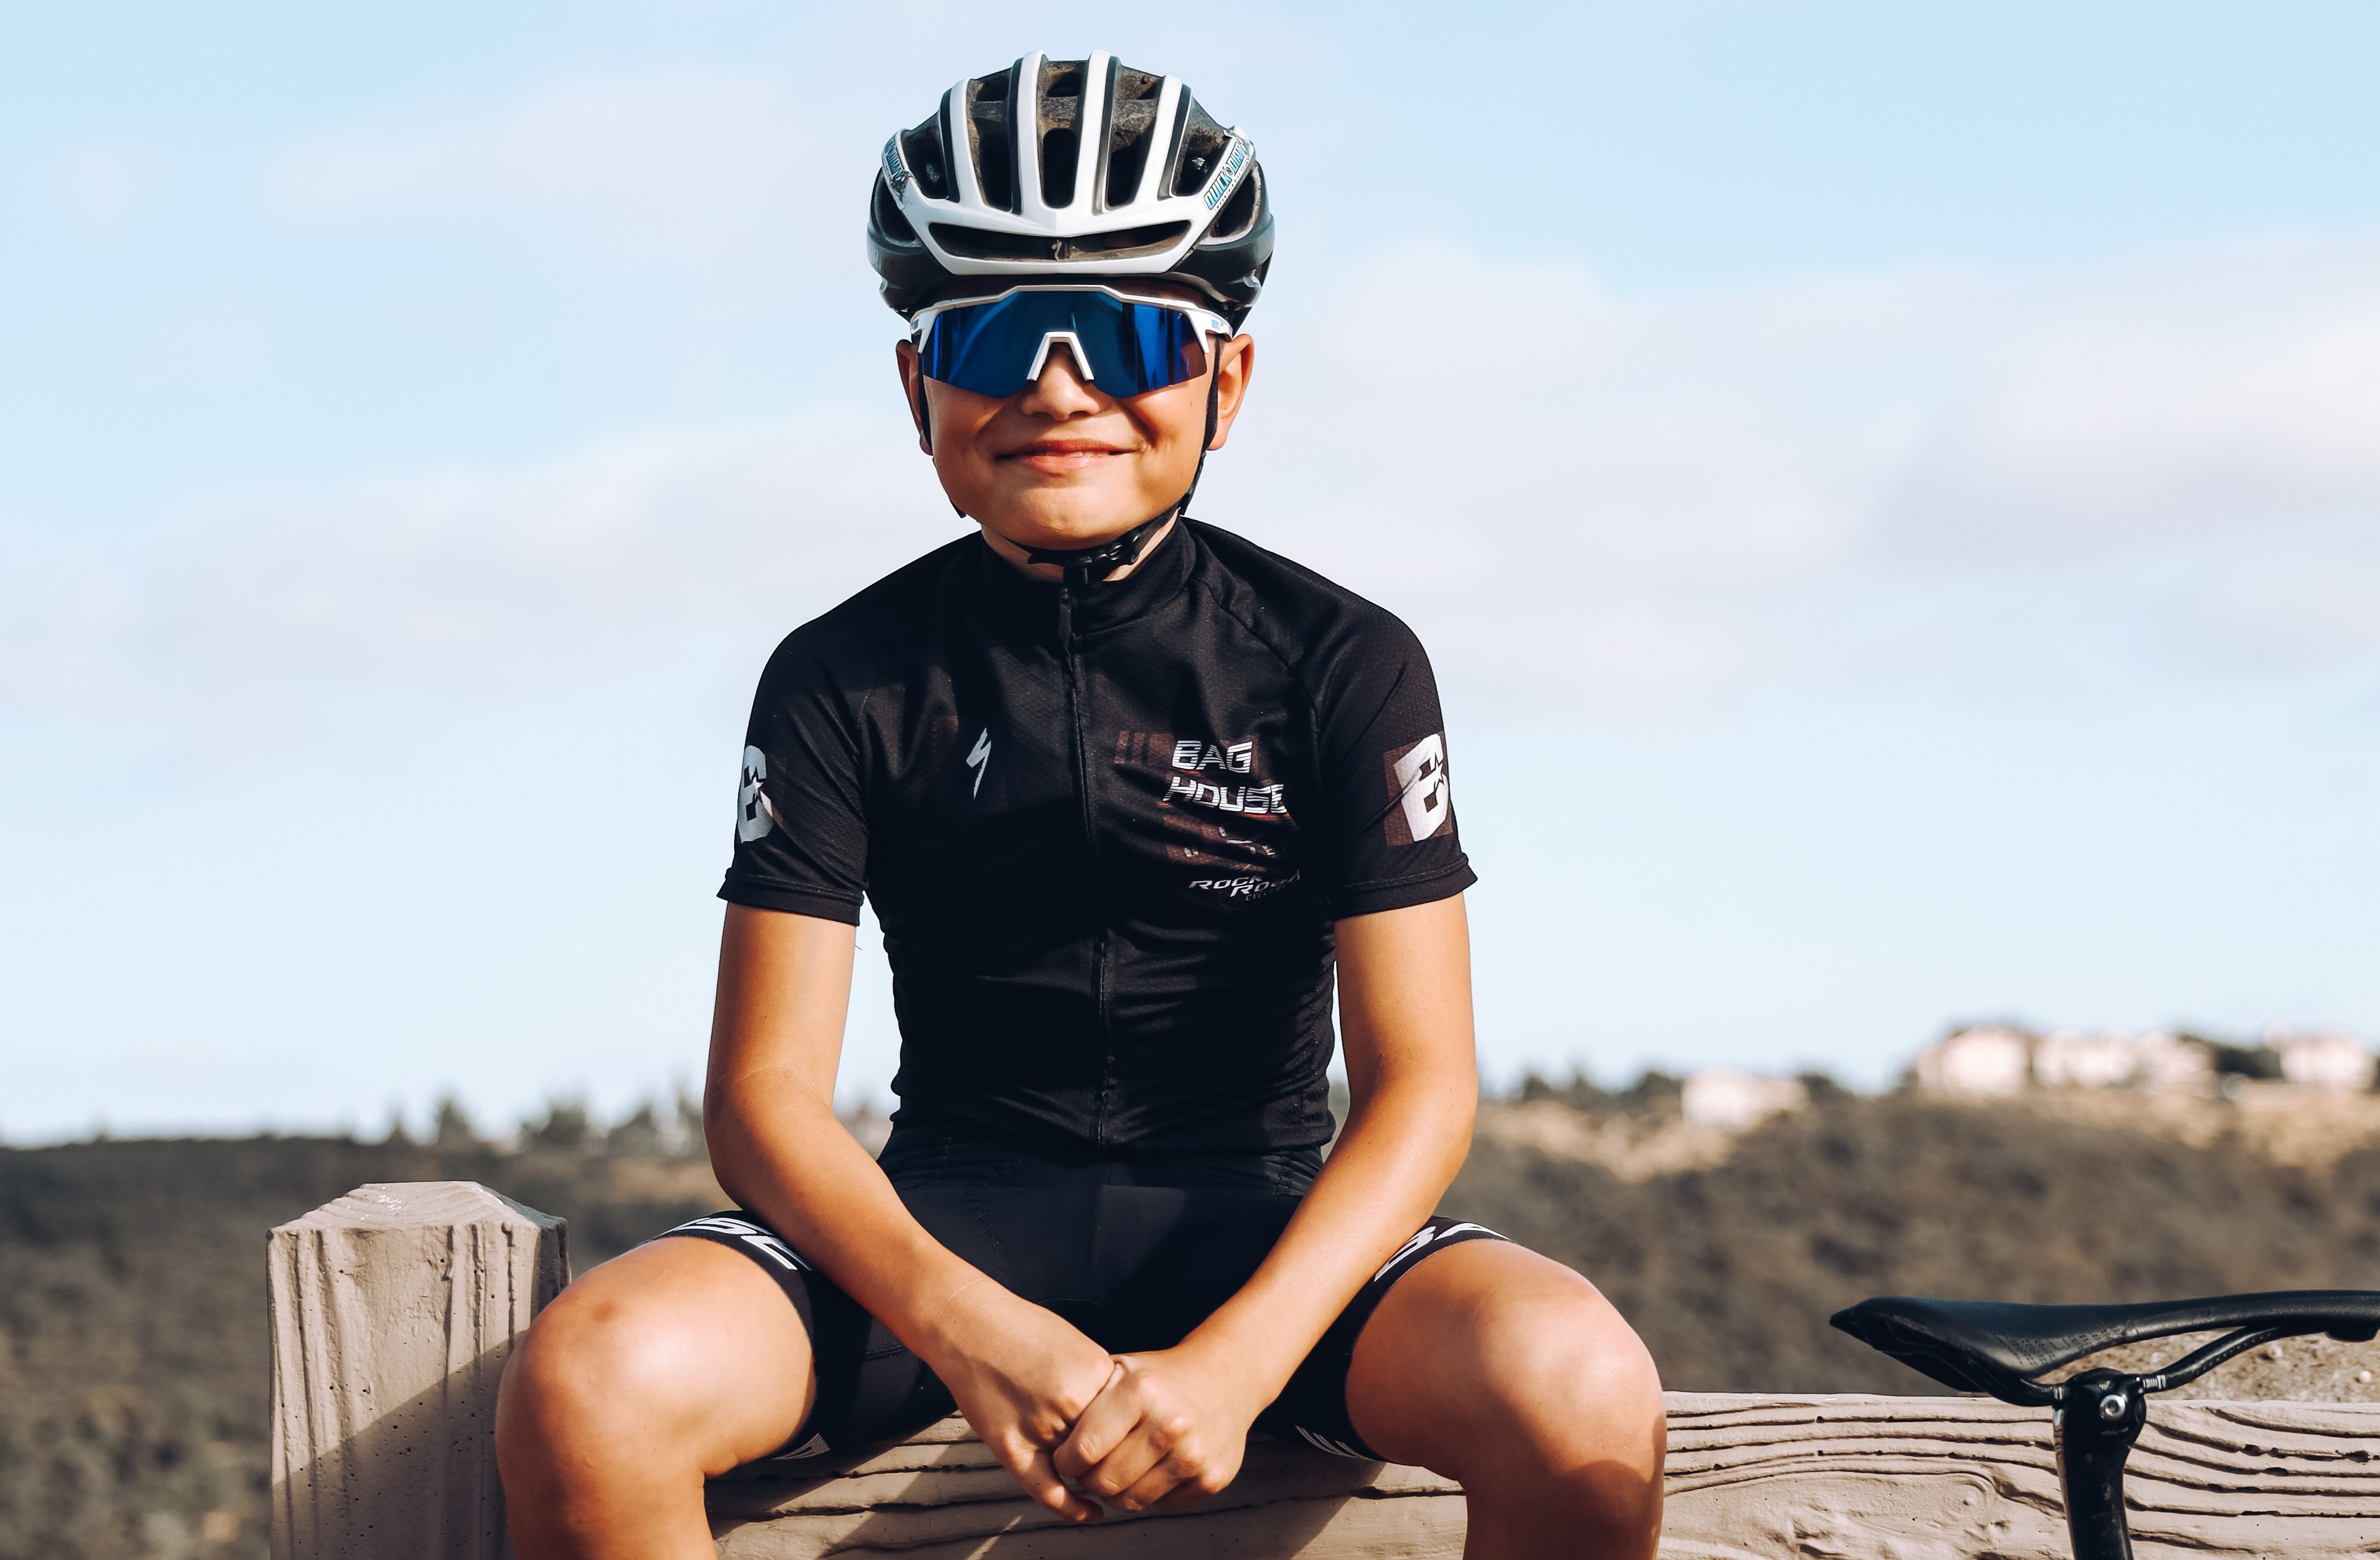 Keeping younger riders sharp in sunny conditions